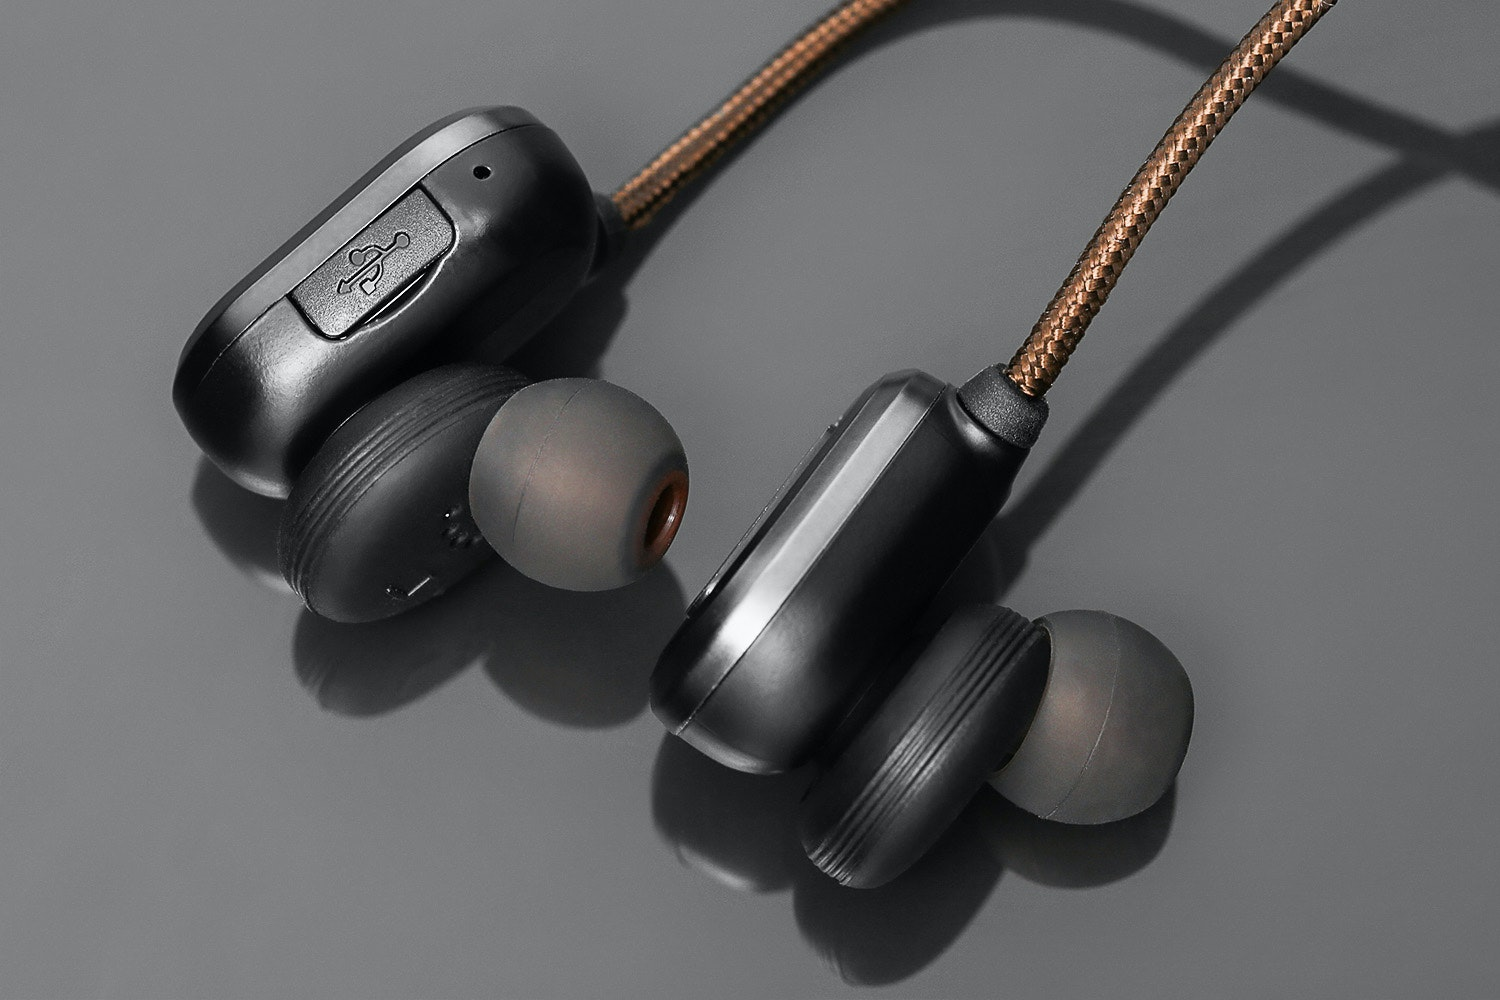 Macaw T1000 Wireless Earphones